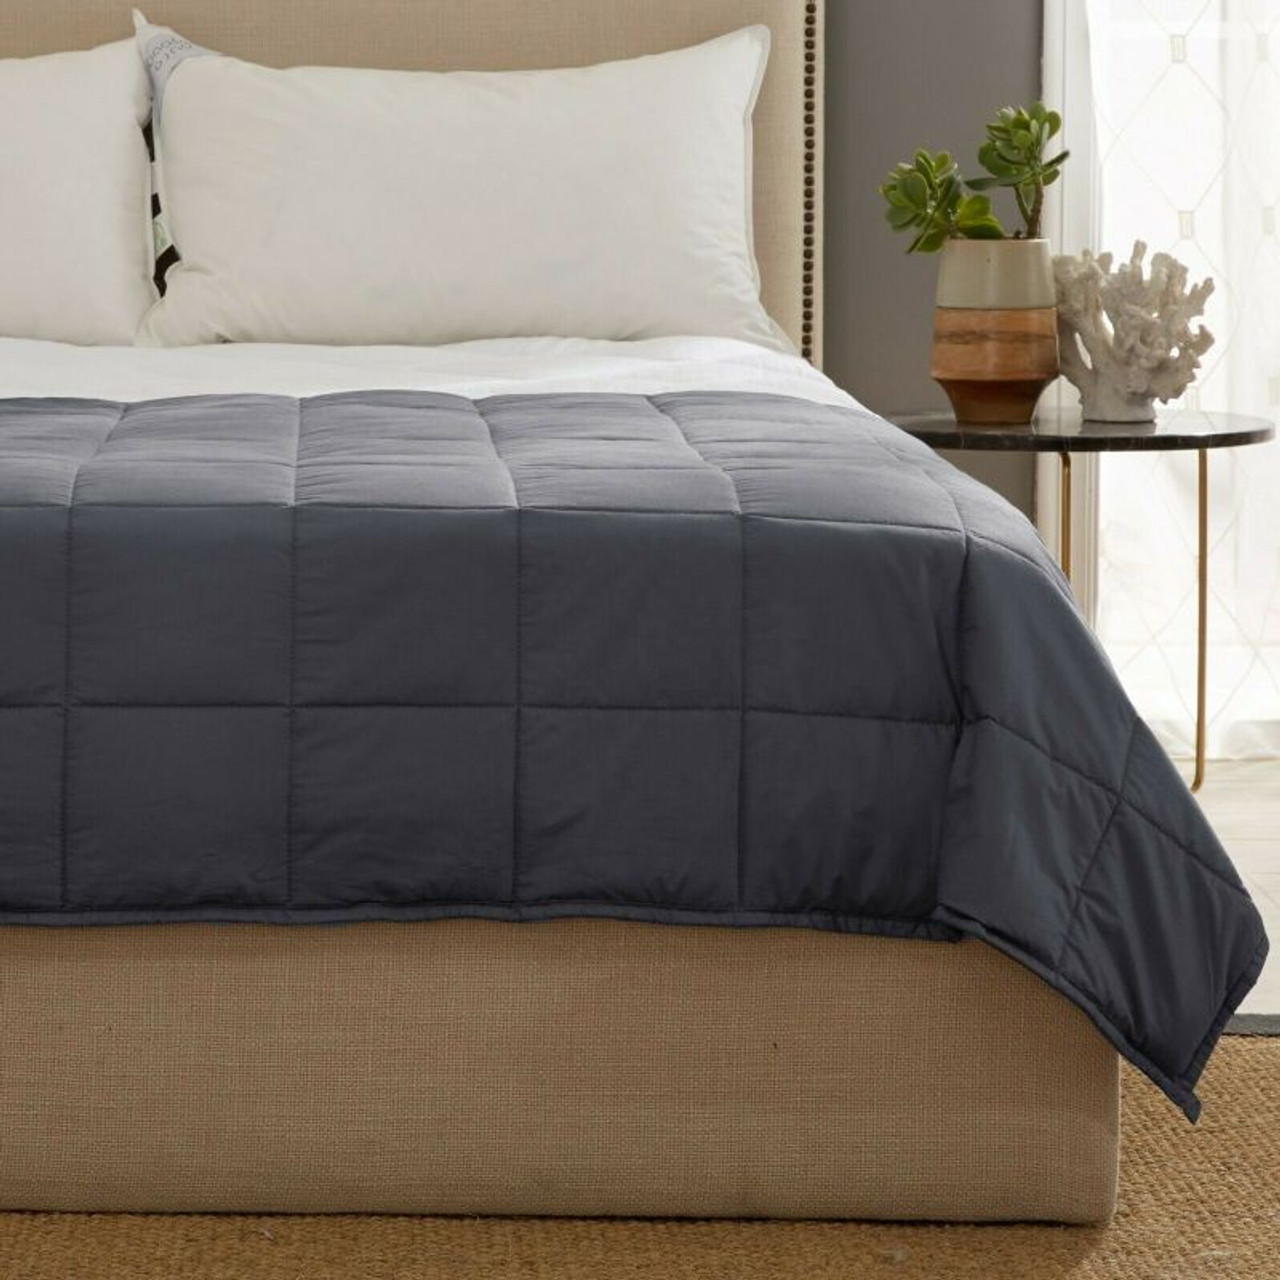 Kathy Ireland Weighted Blanket with Glass Beads